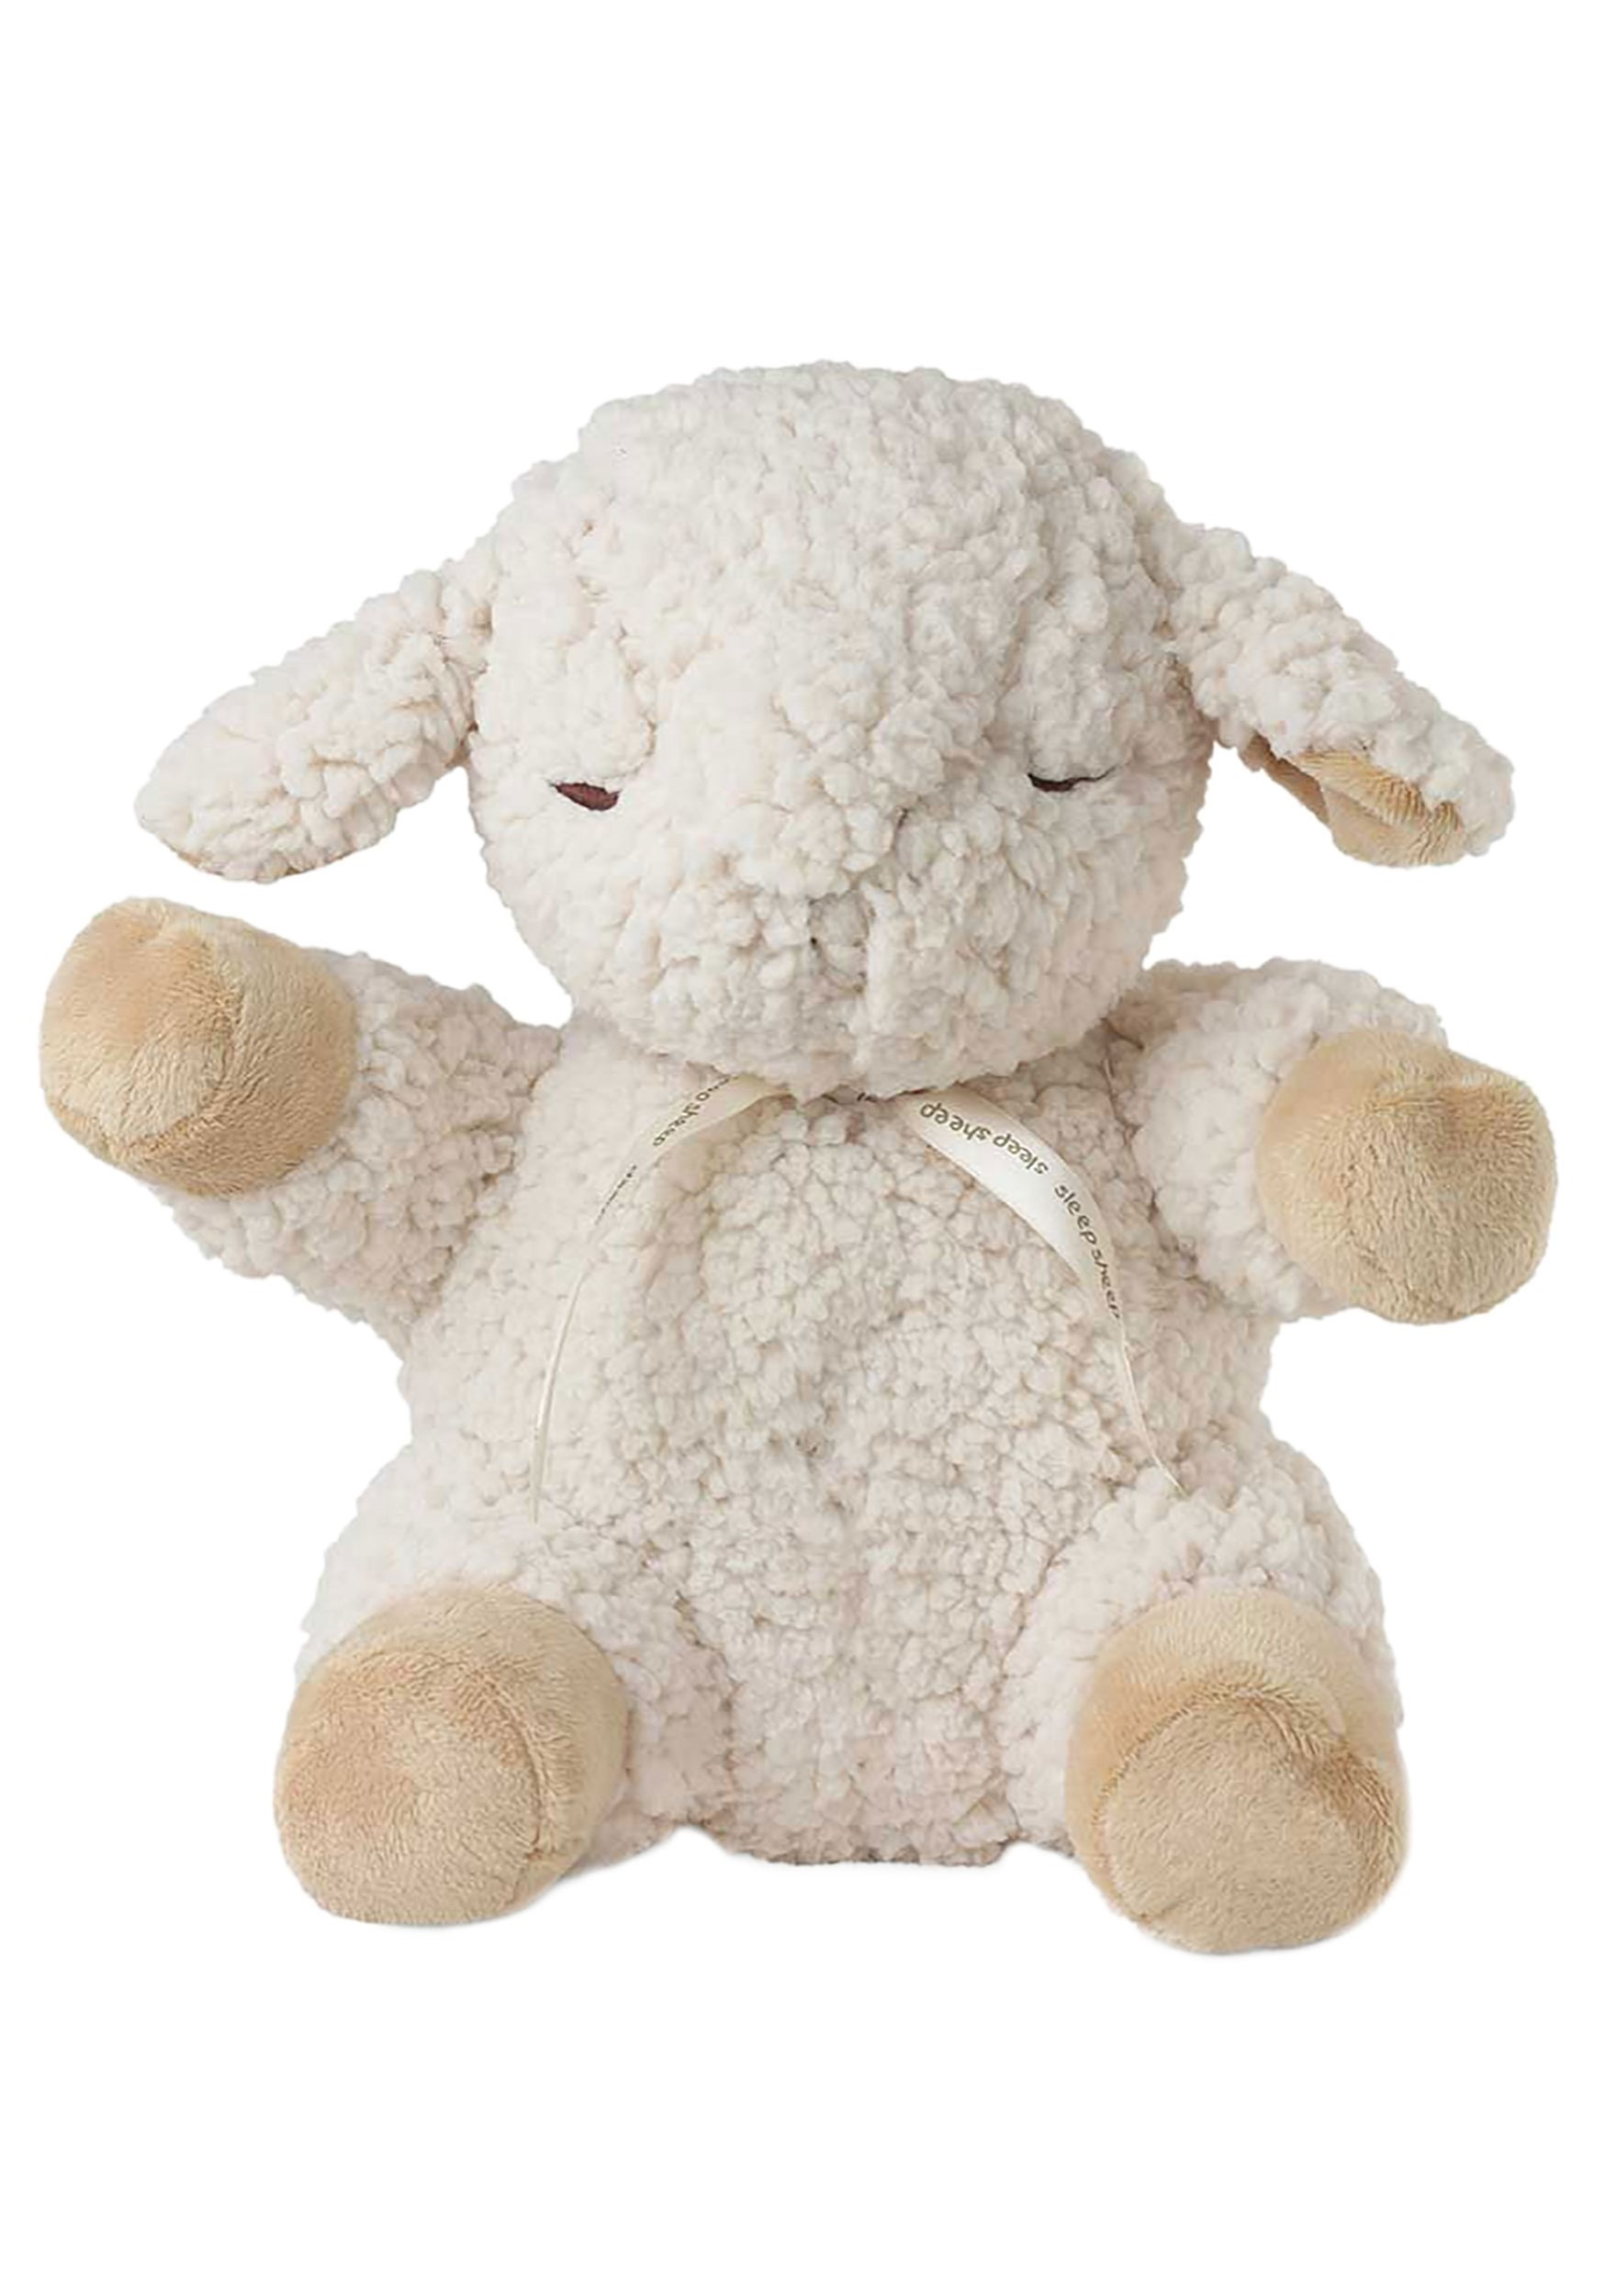 Cloud B Sleep Sheep Soothing Sounds Plush Animal